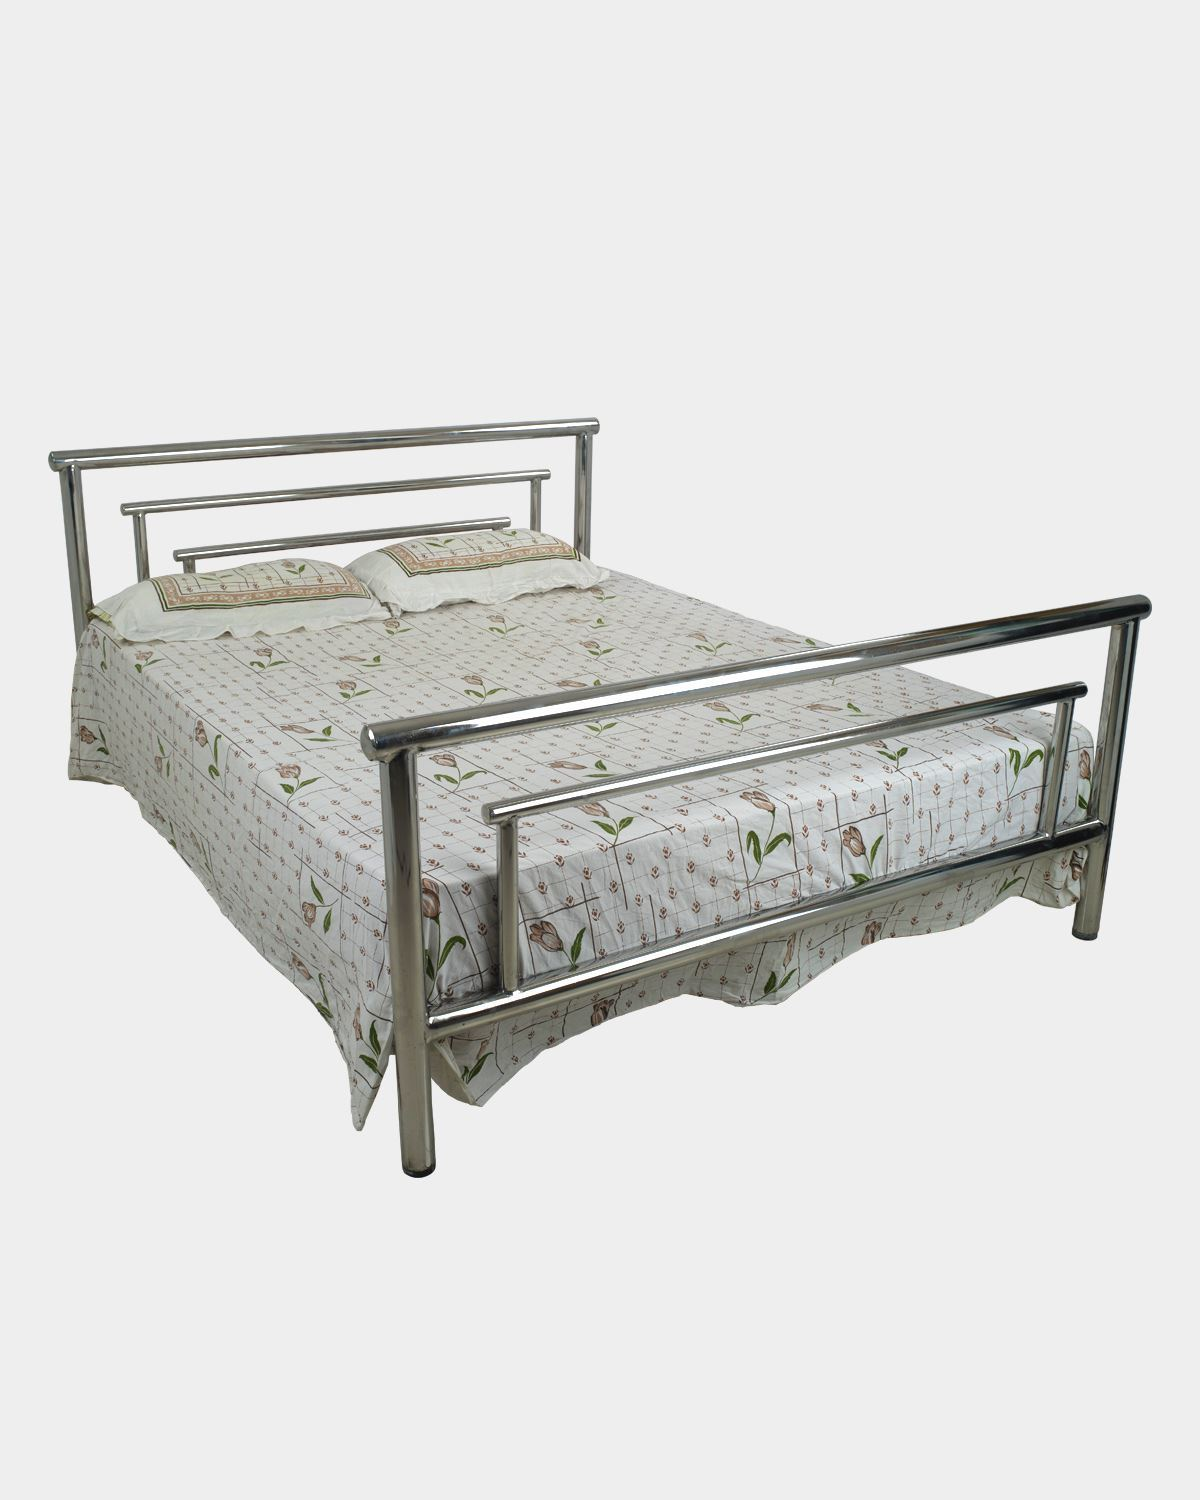 Double Size Bed King Size Double Bed Stainless Steel